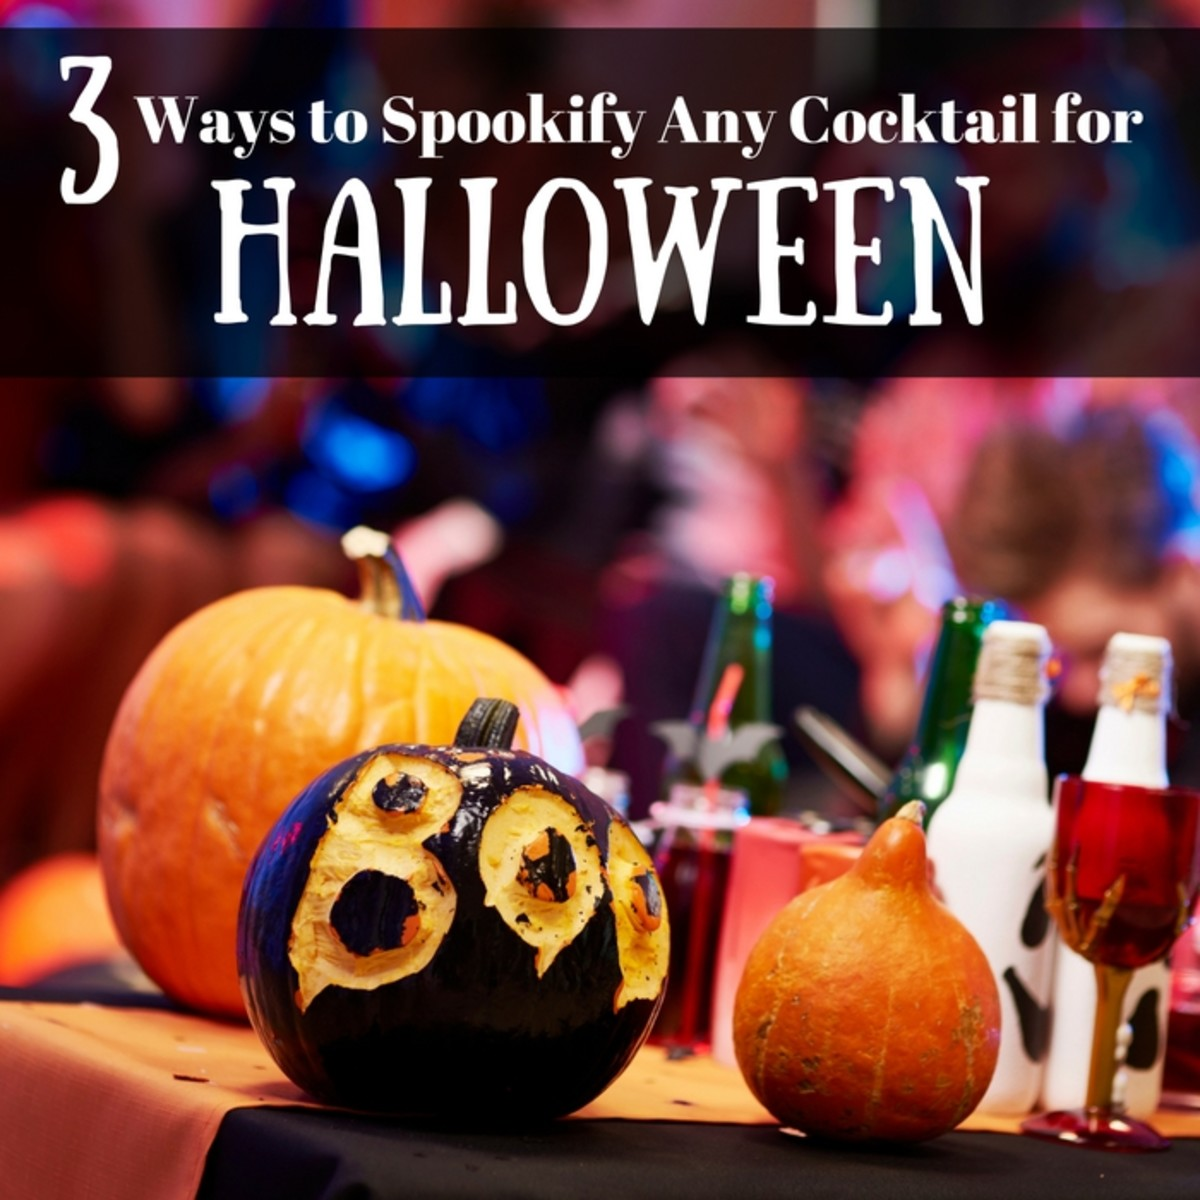 3 Easy Ways to Make Any Cocktail Ready For Halloween